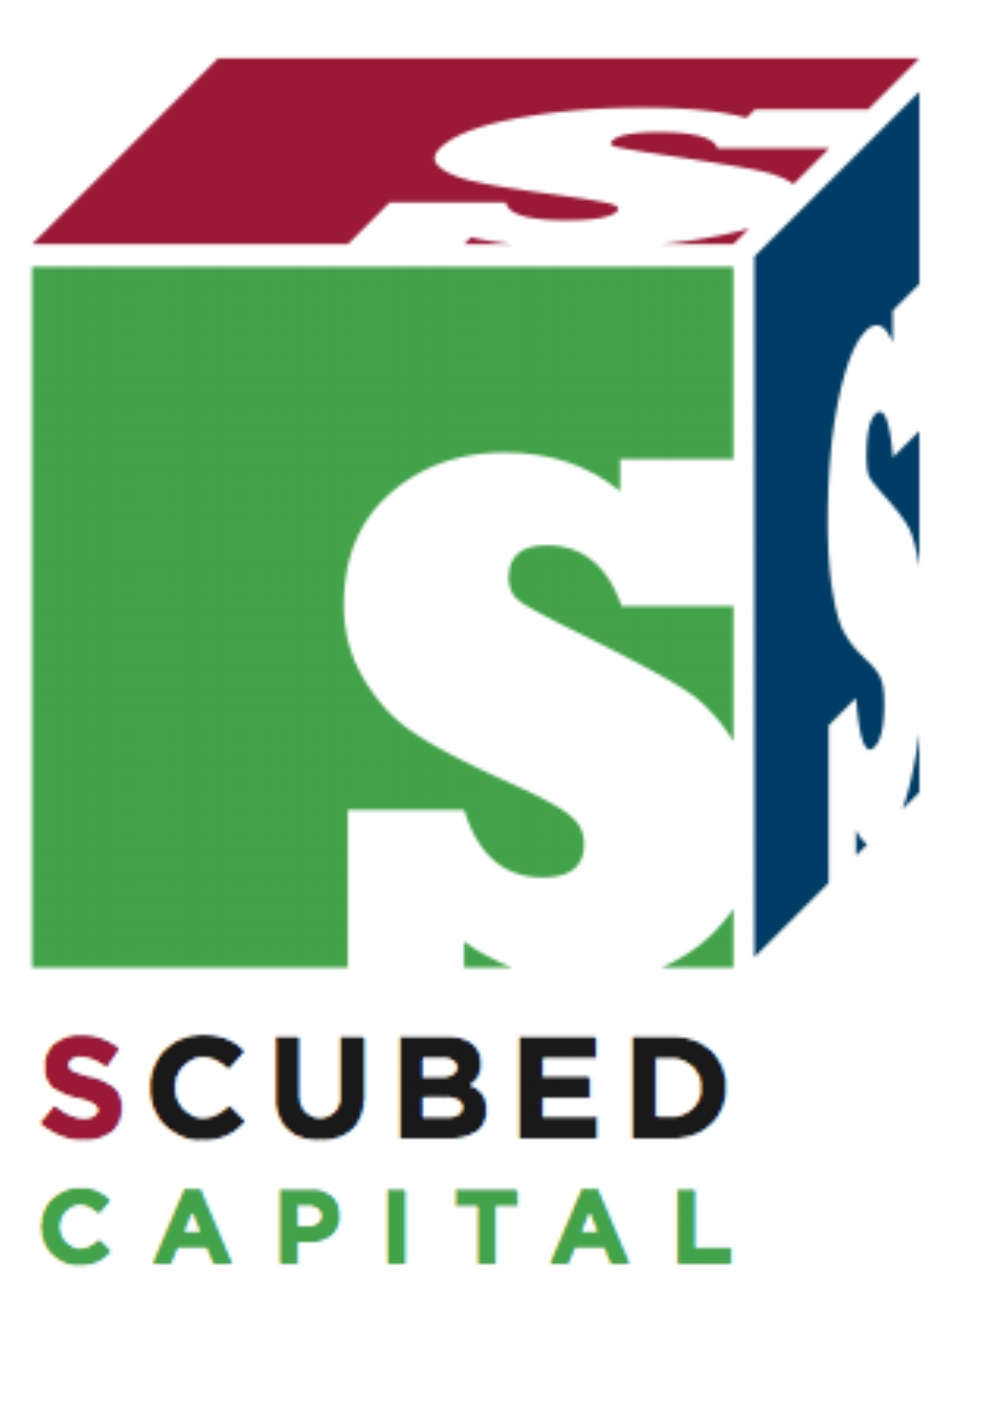 S-Cubed Capital